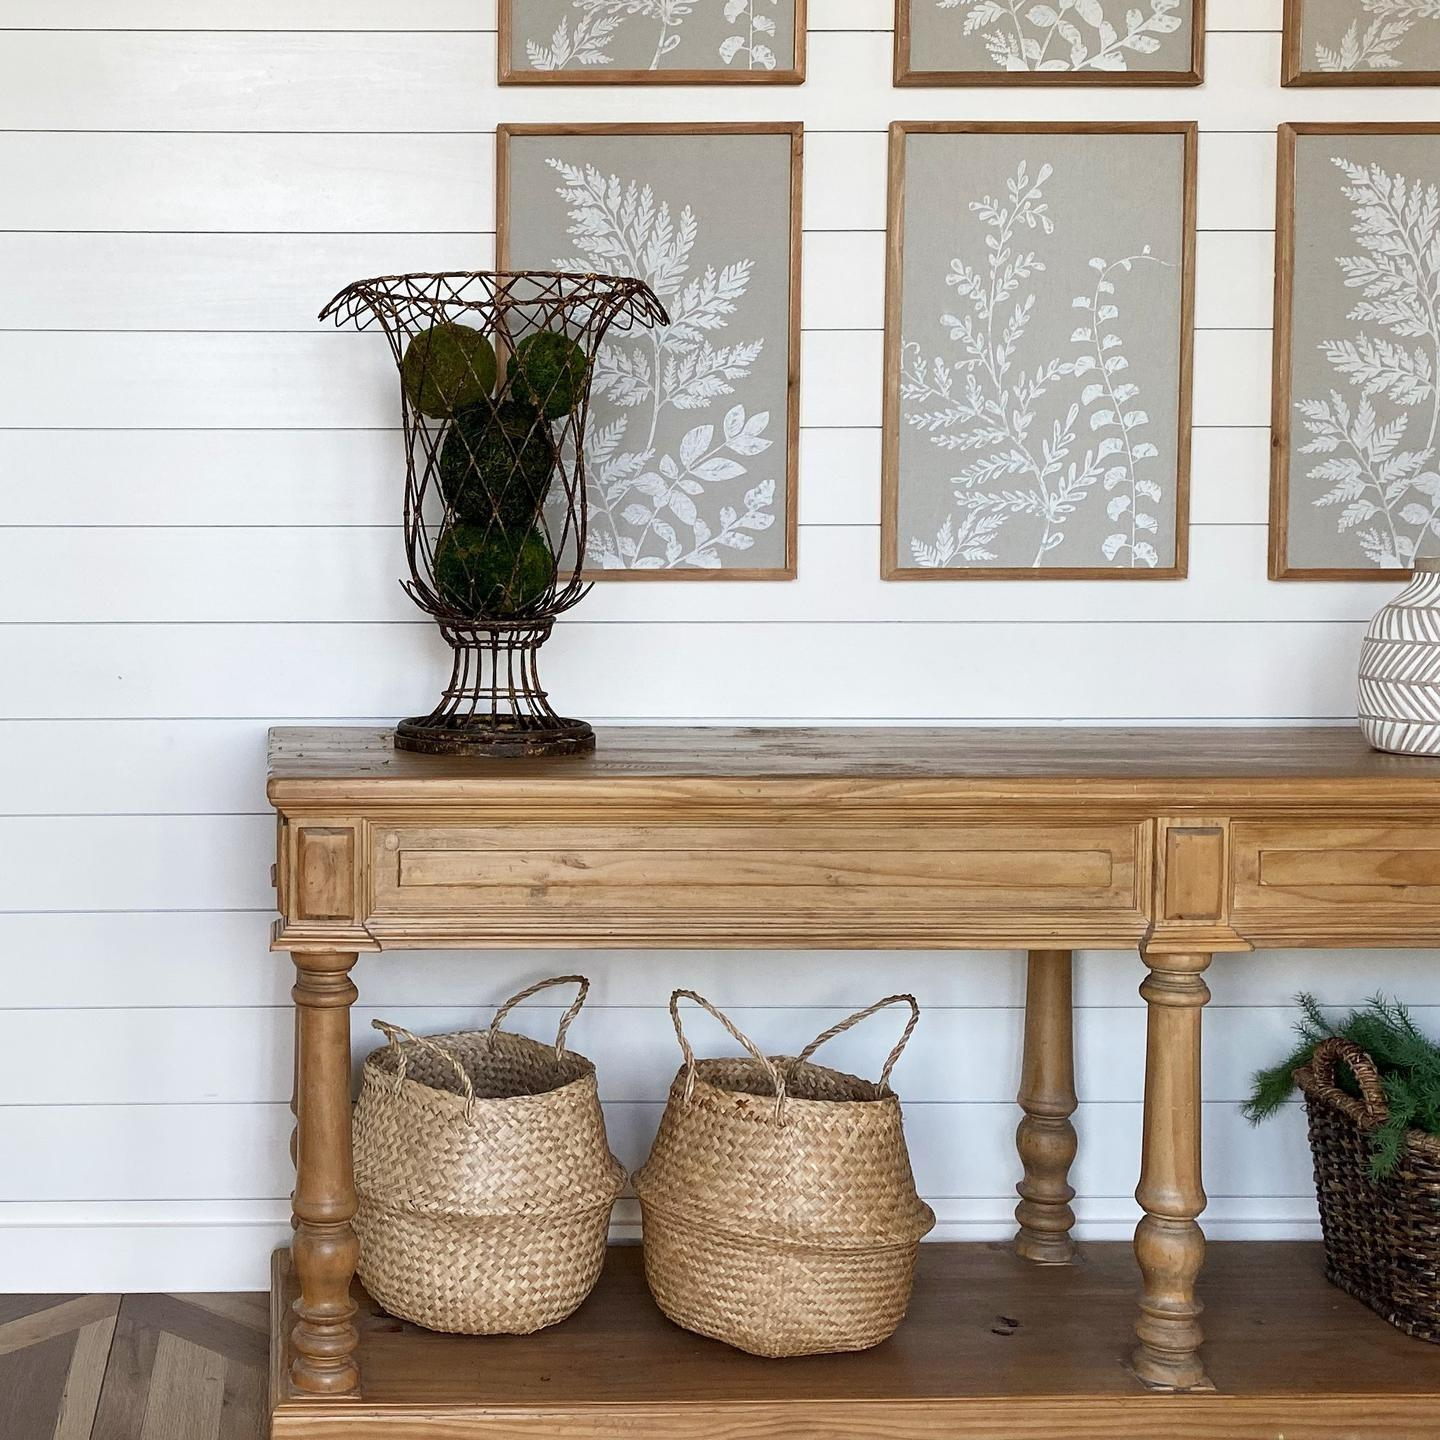 Staged farmhouse entry with baskets